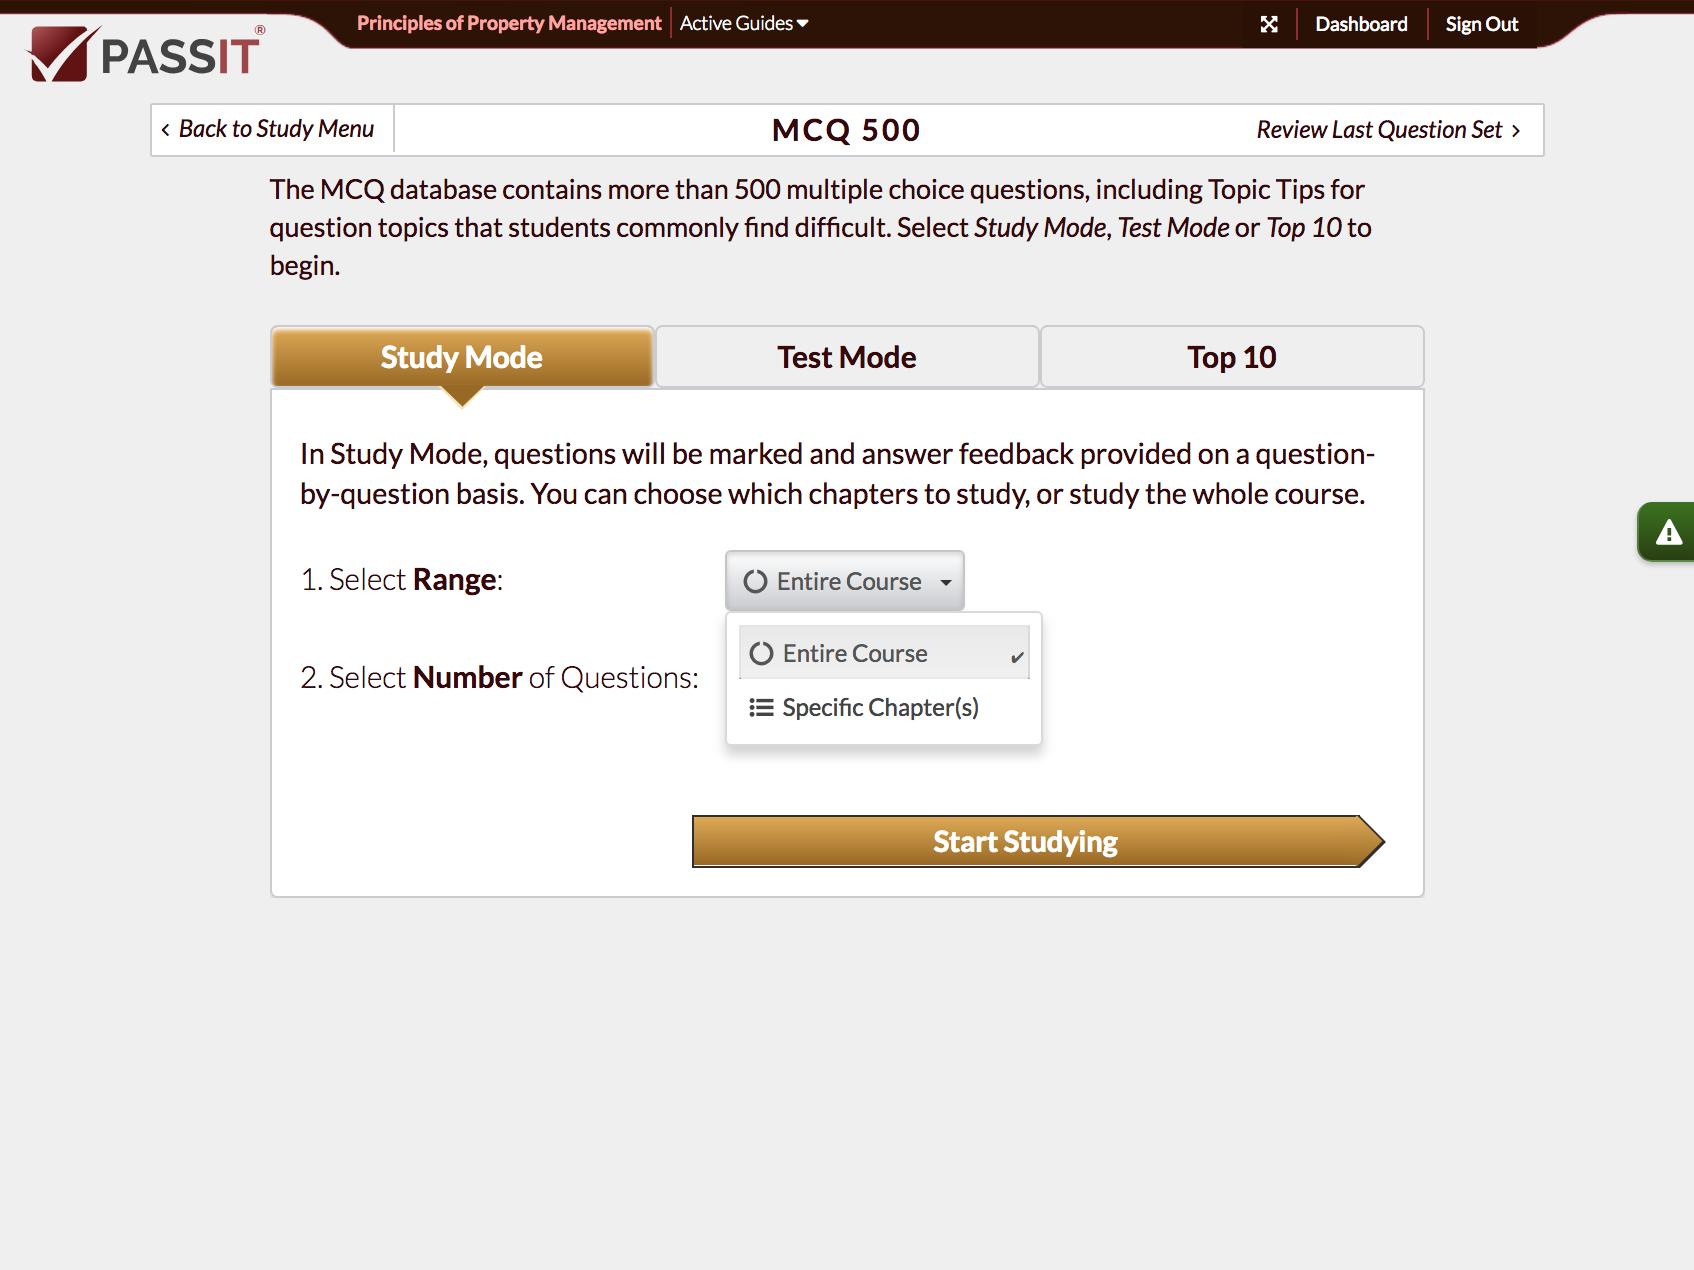 Snapshot of MCQ Menu Study Options